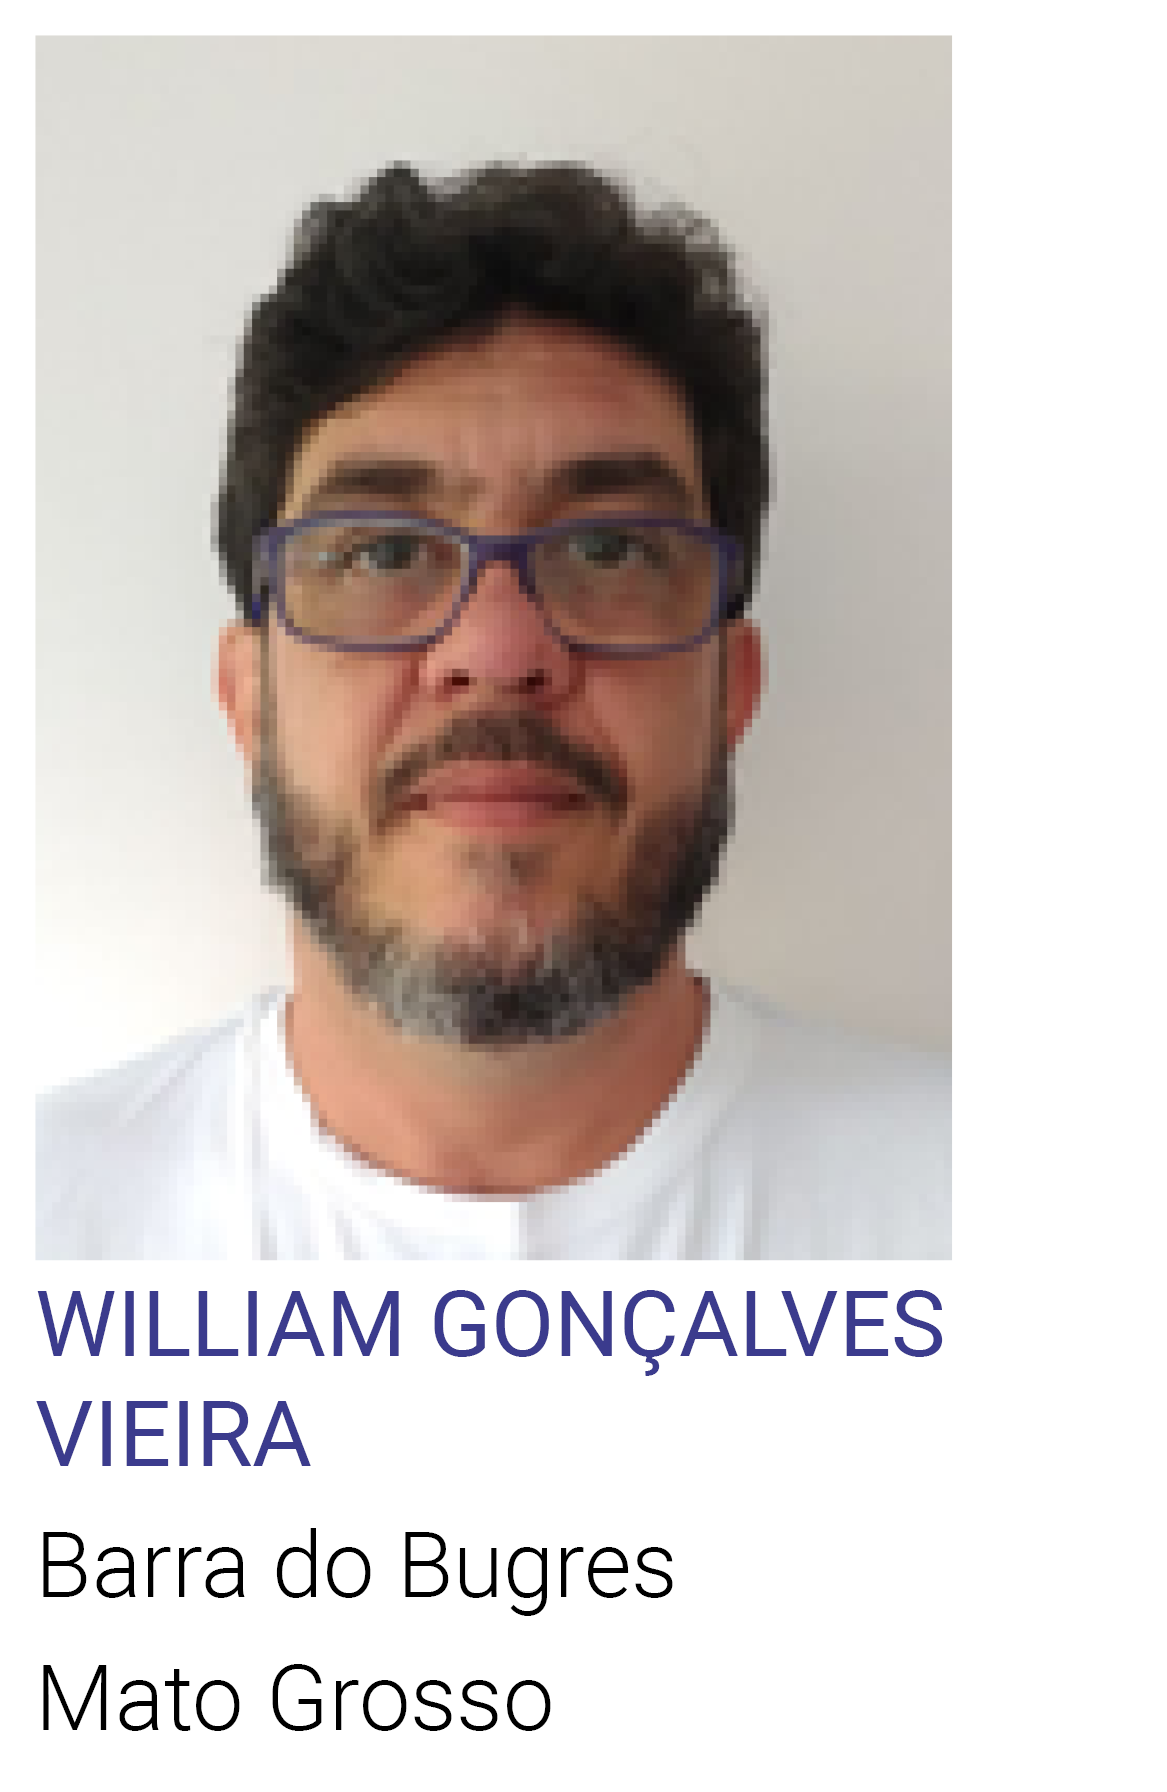 WILLIAM GONÇALVES VIEIRA